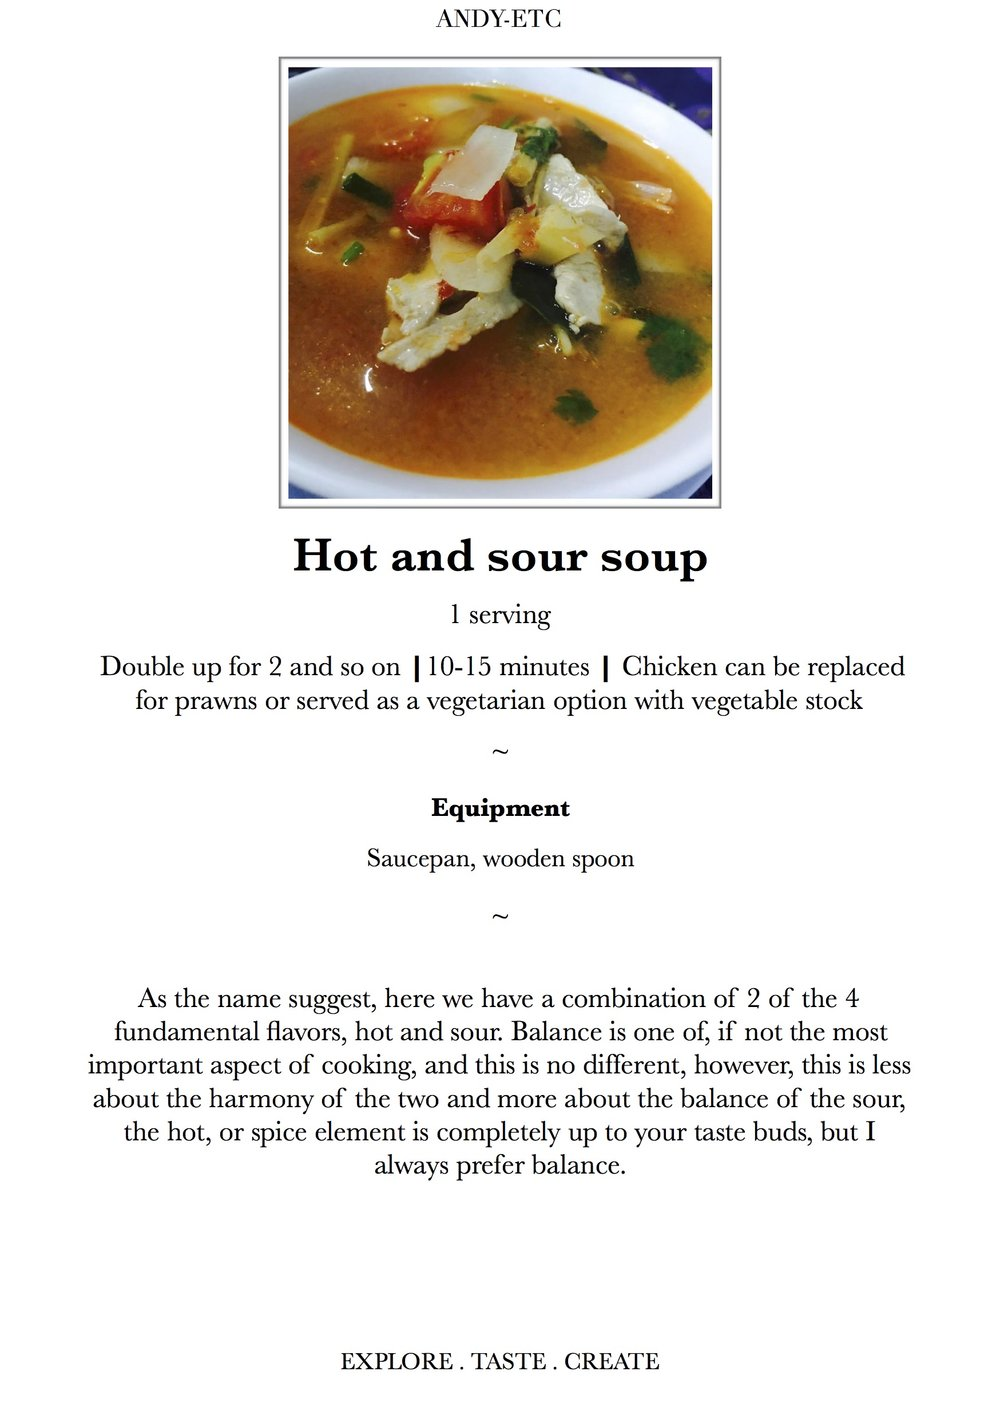 Hot and sour soup recipe Andy Food blog.jpg